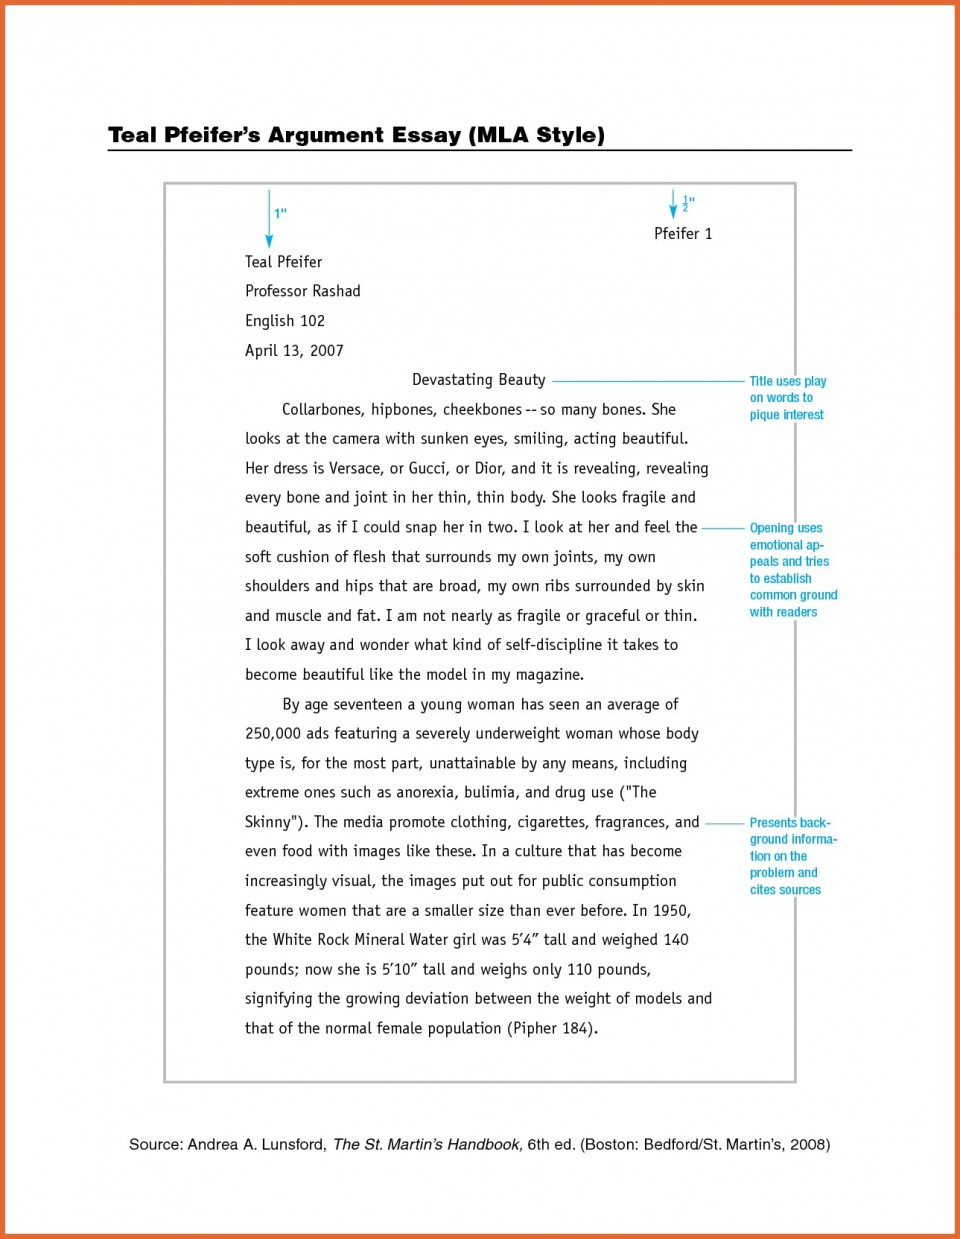 018 Mla Format Essay Title Page Fresh Of An Goal How To Your Paper In Goodwi My Style With Word Narrative Stirring Template Outline Persuasive Parenthetical Citations No Number 960